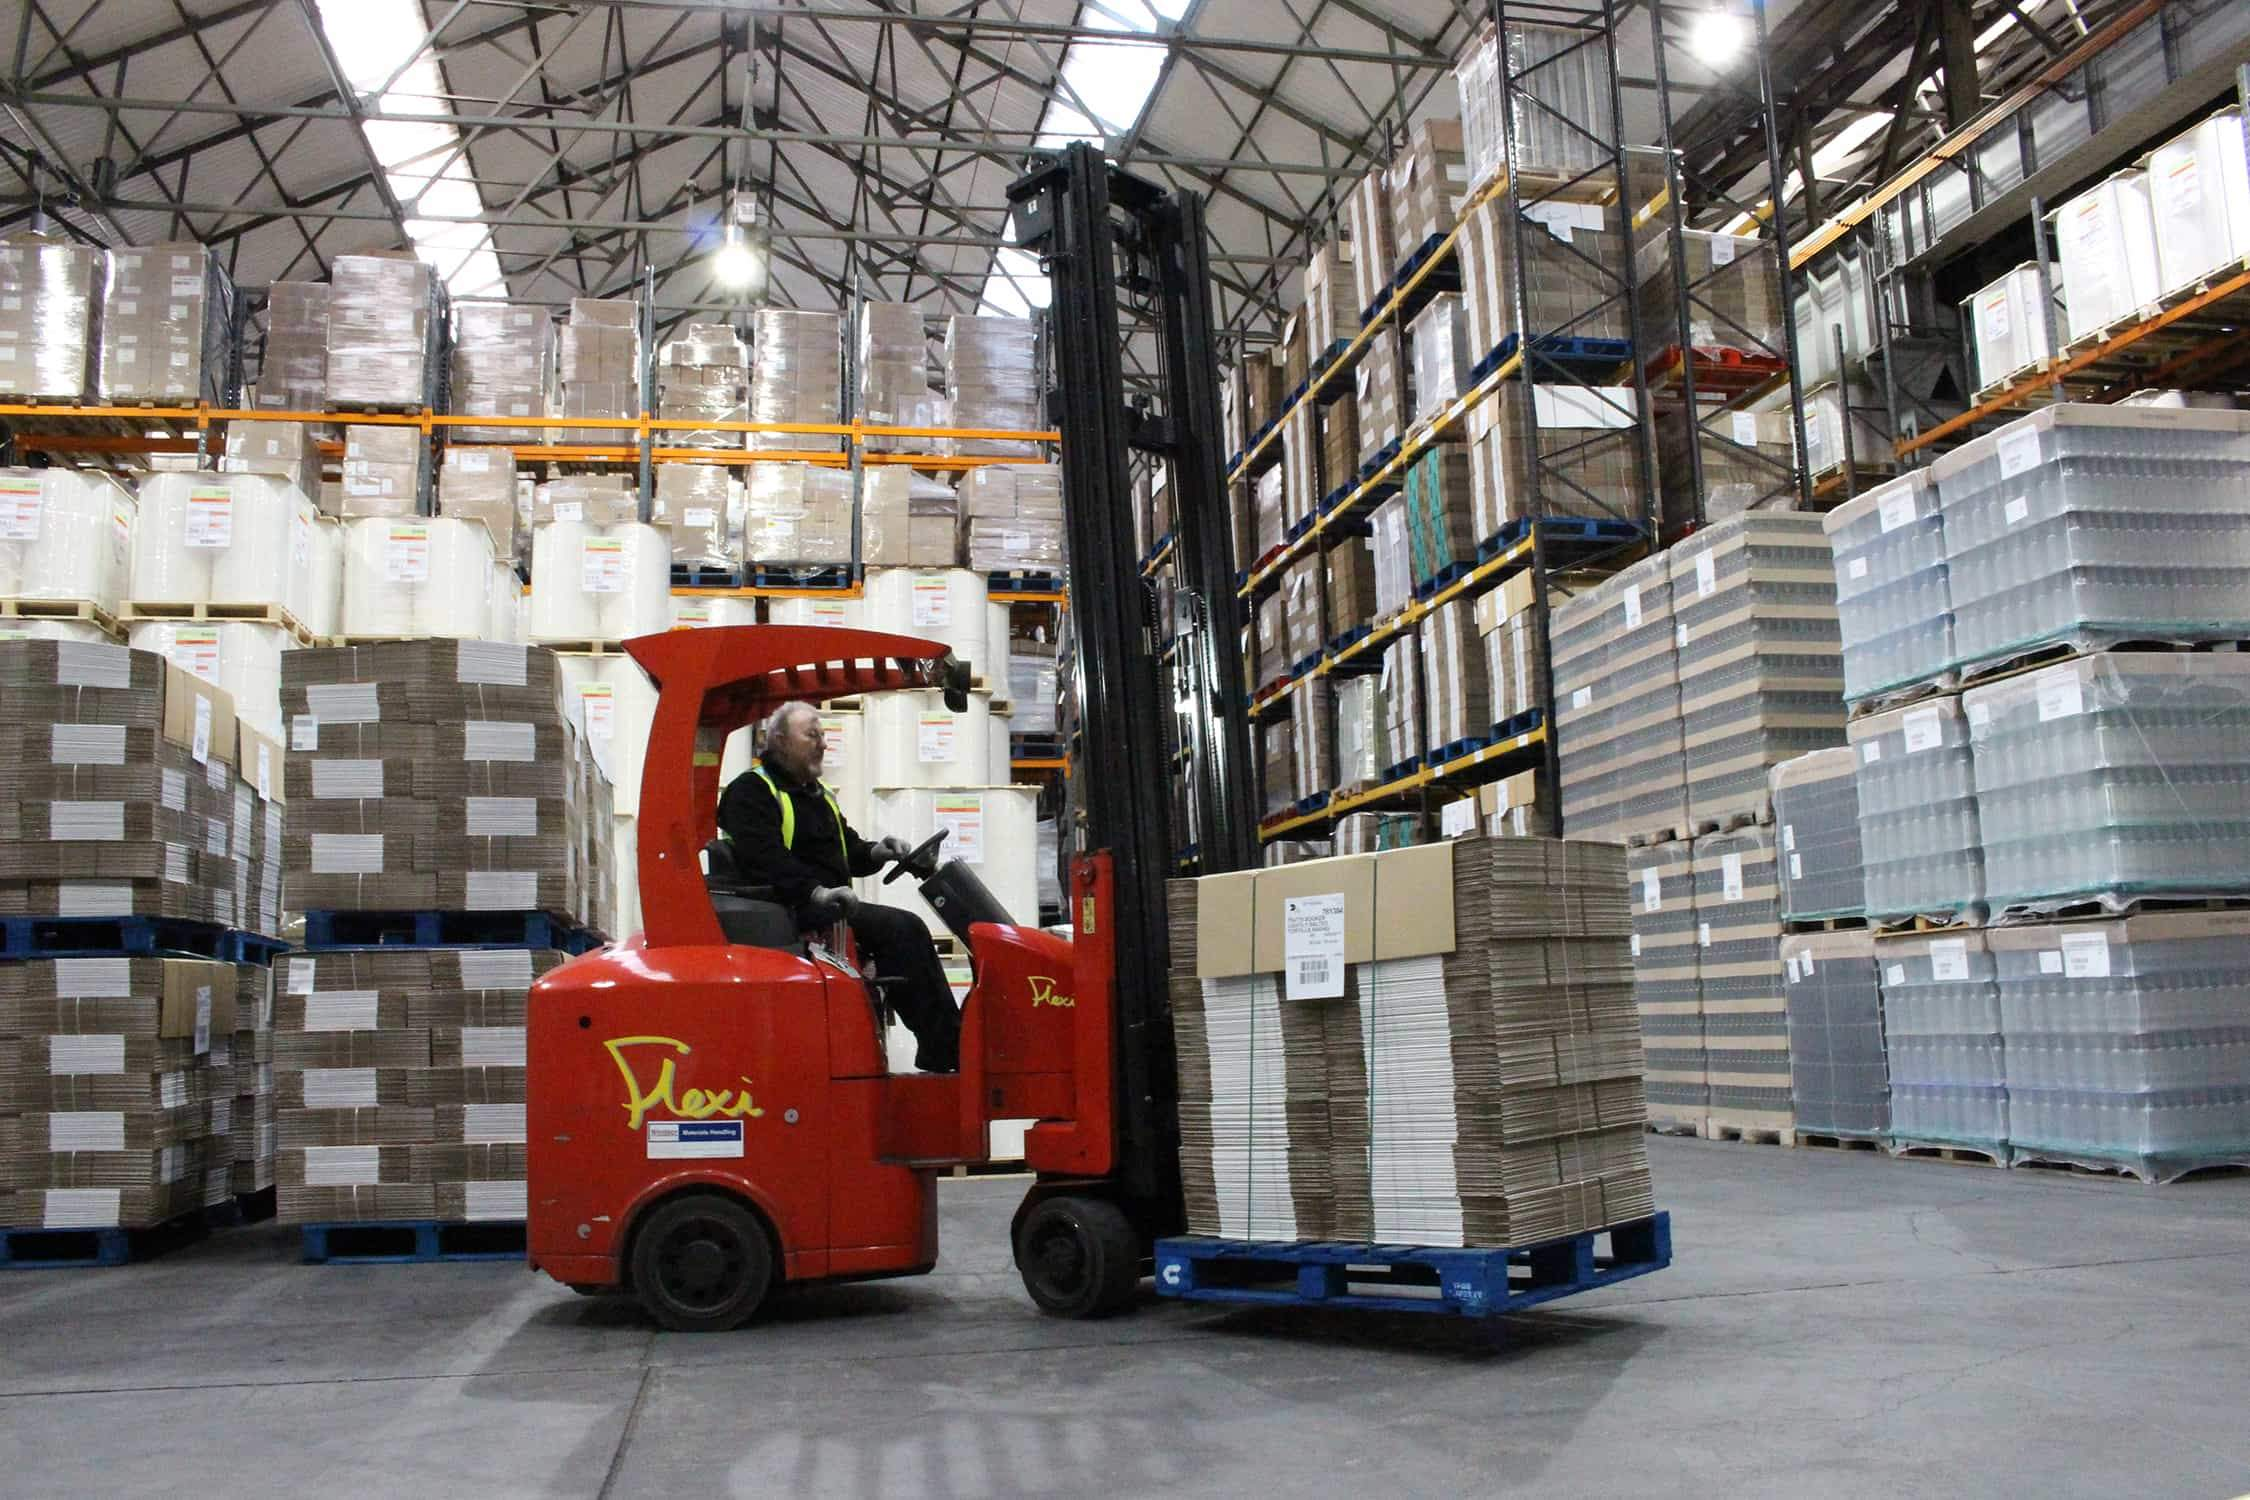 Santander backs acquisition of forklift distributor with £3.3m